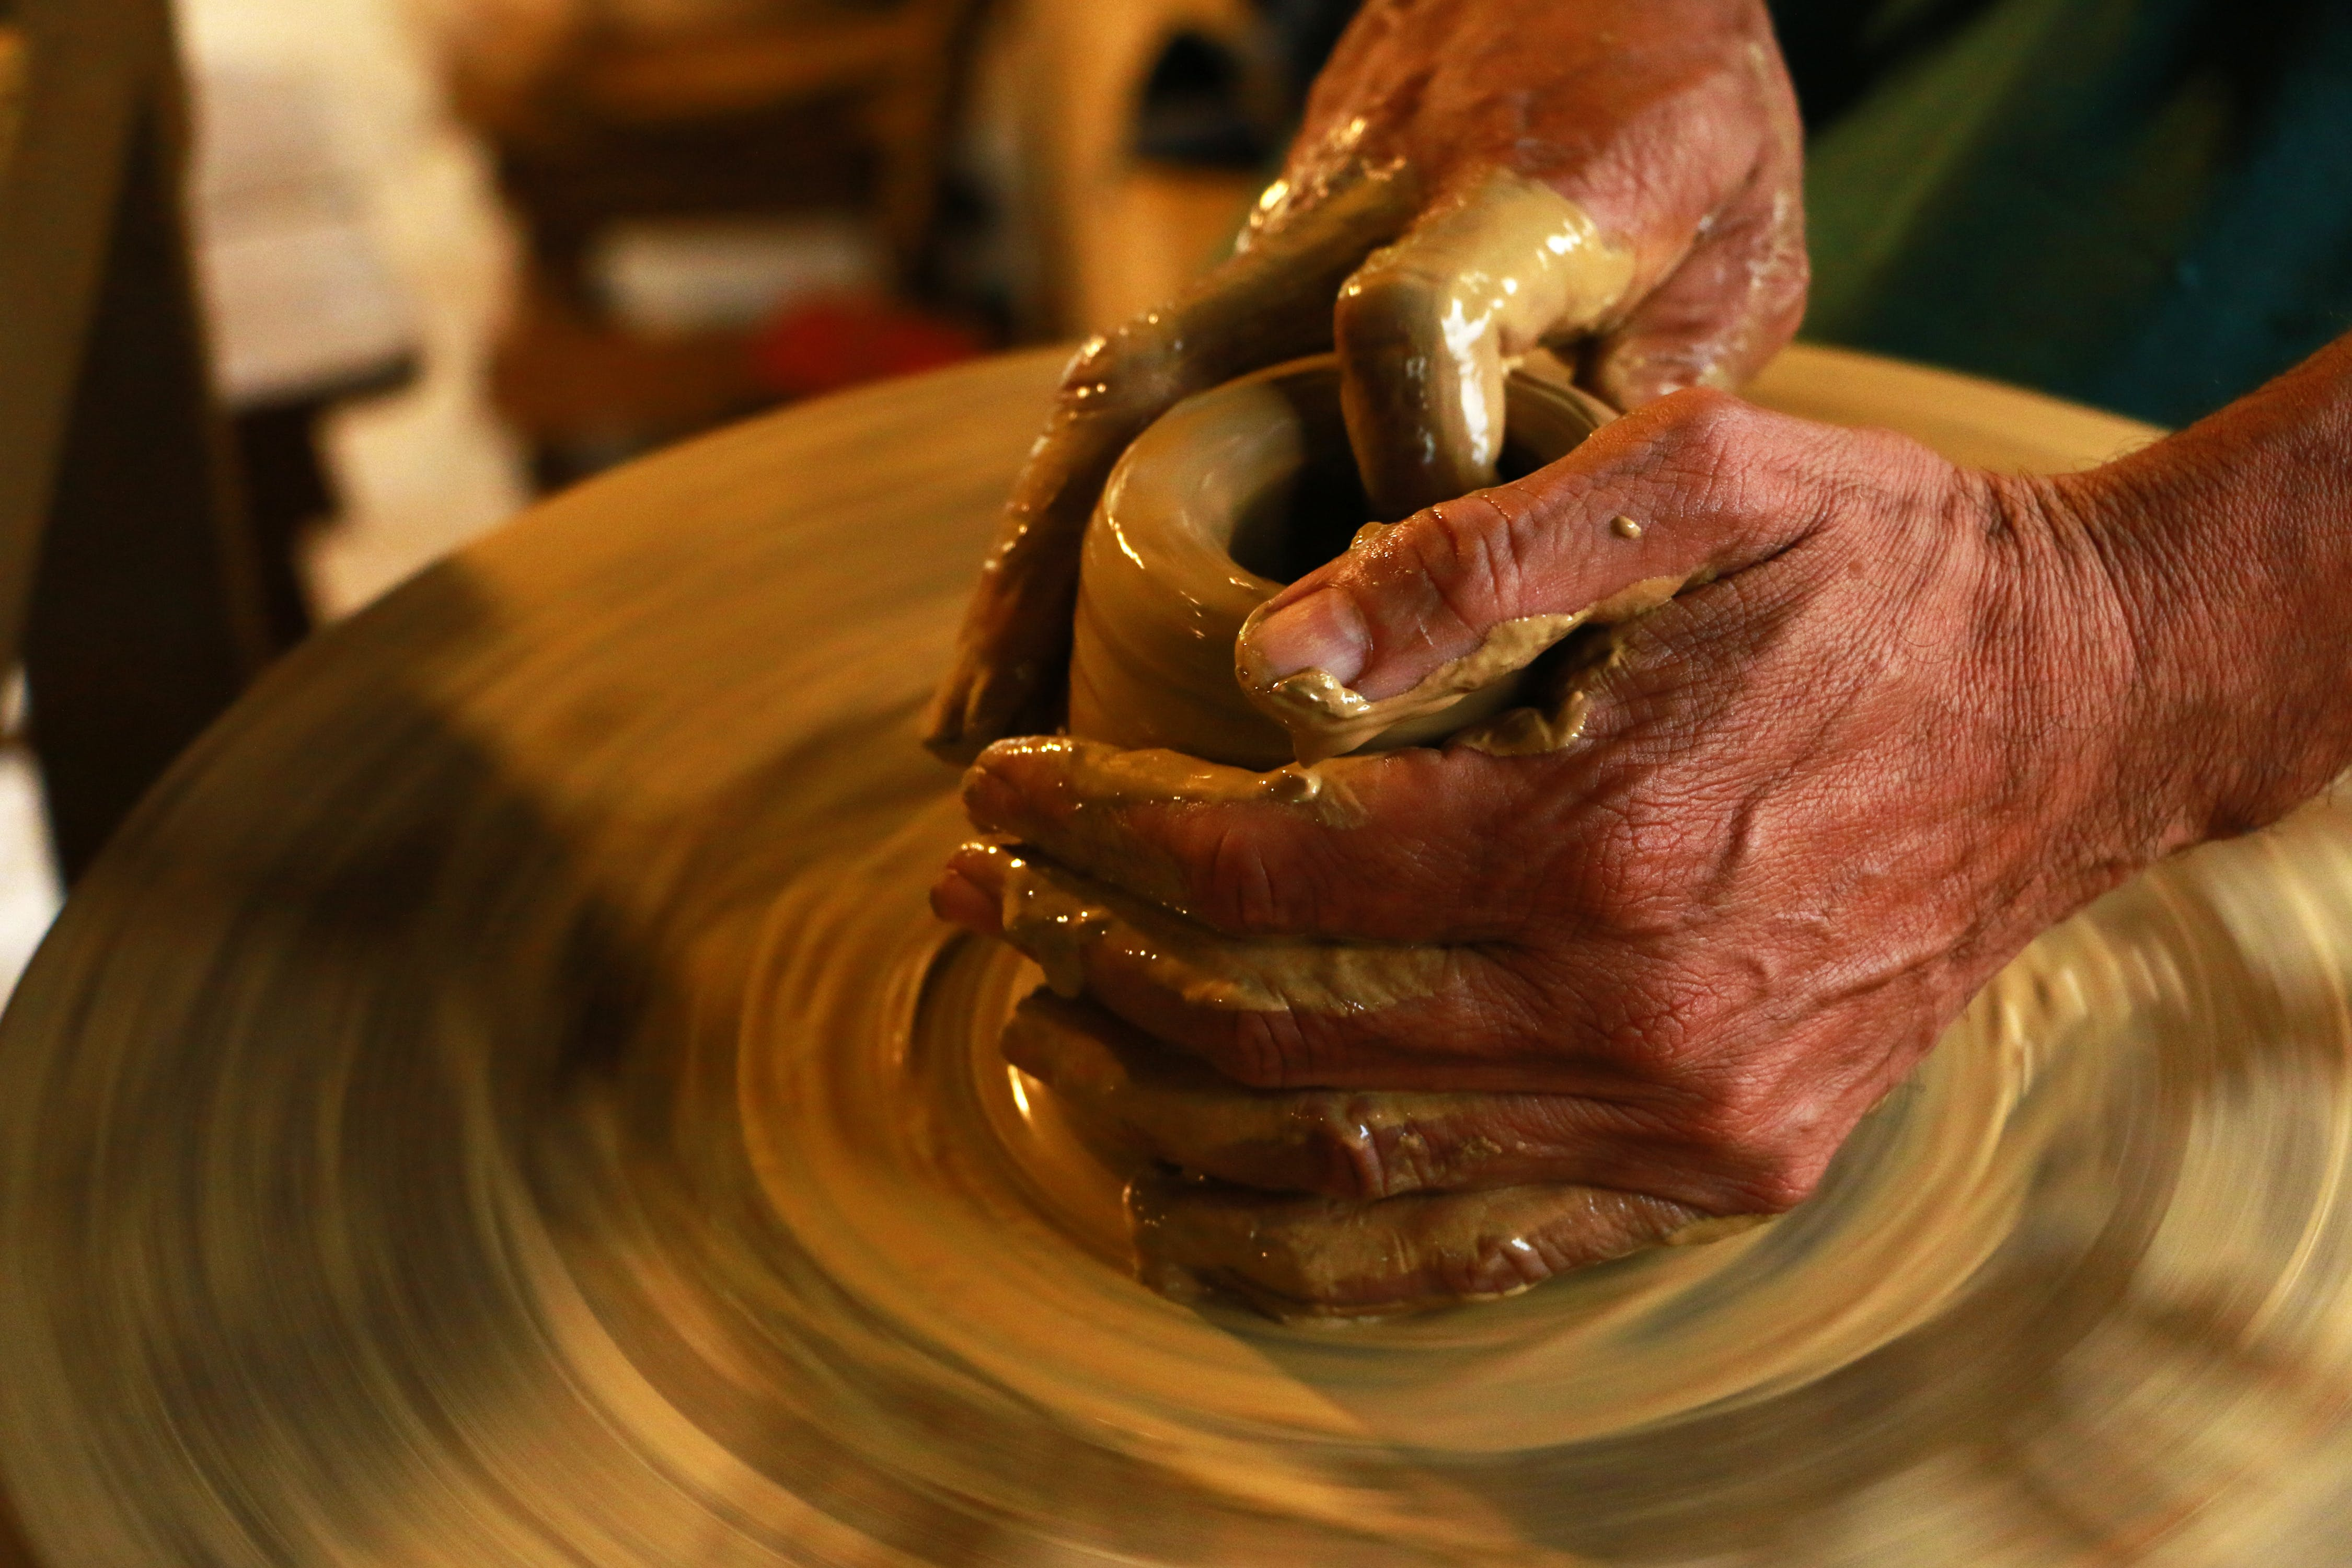 Selective Focus Photography of Person Molding Clay